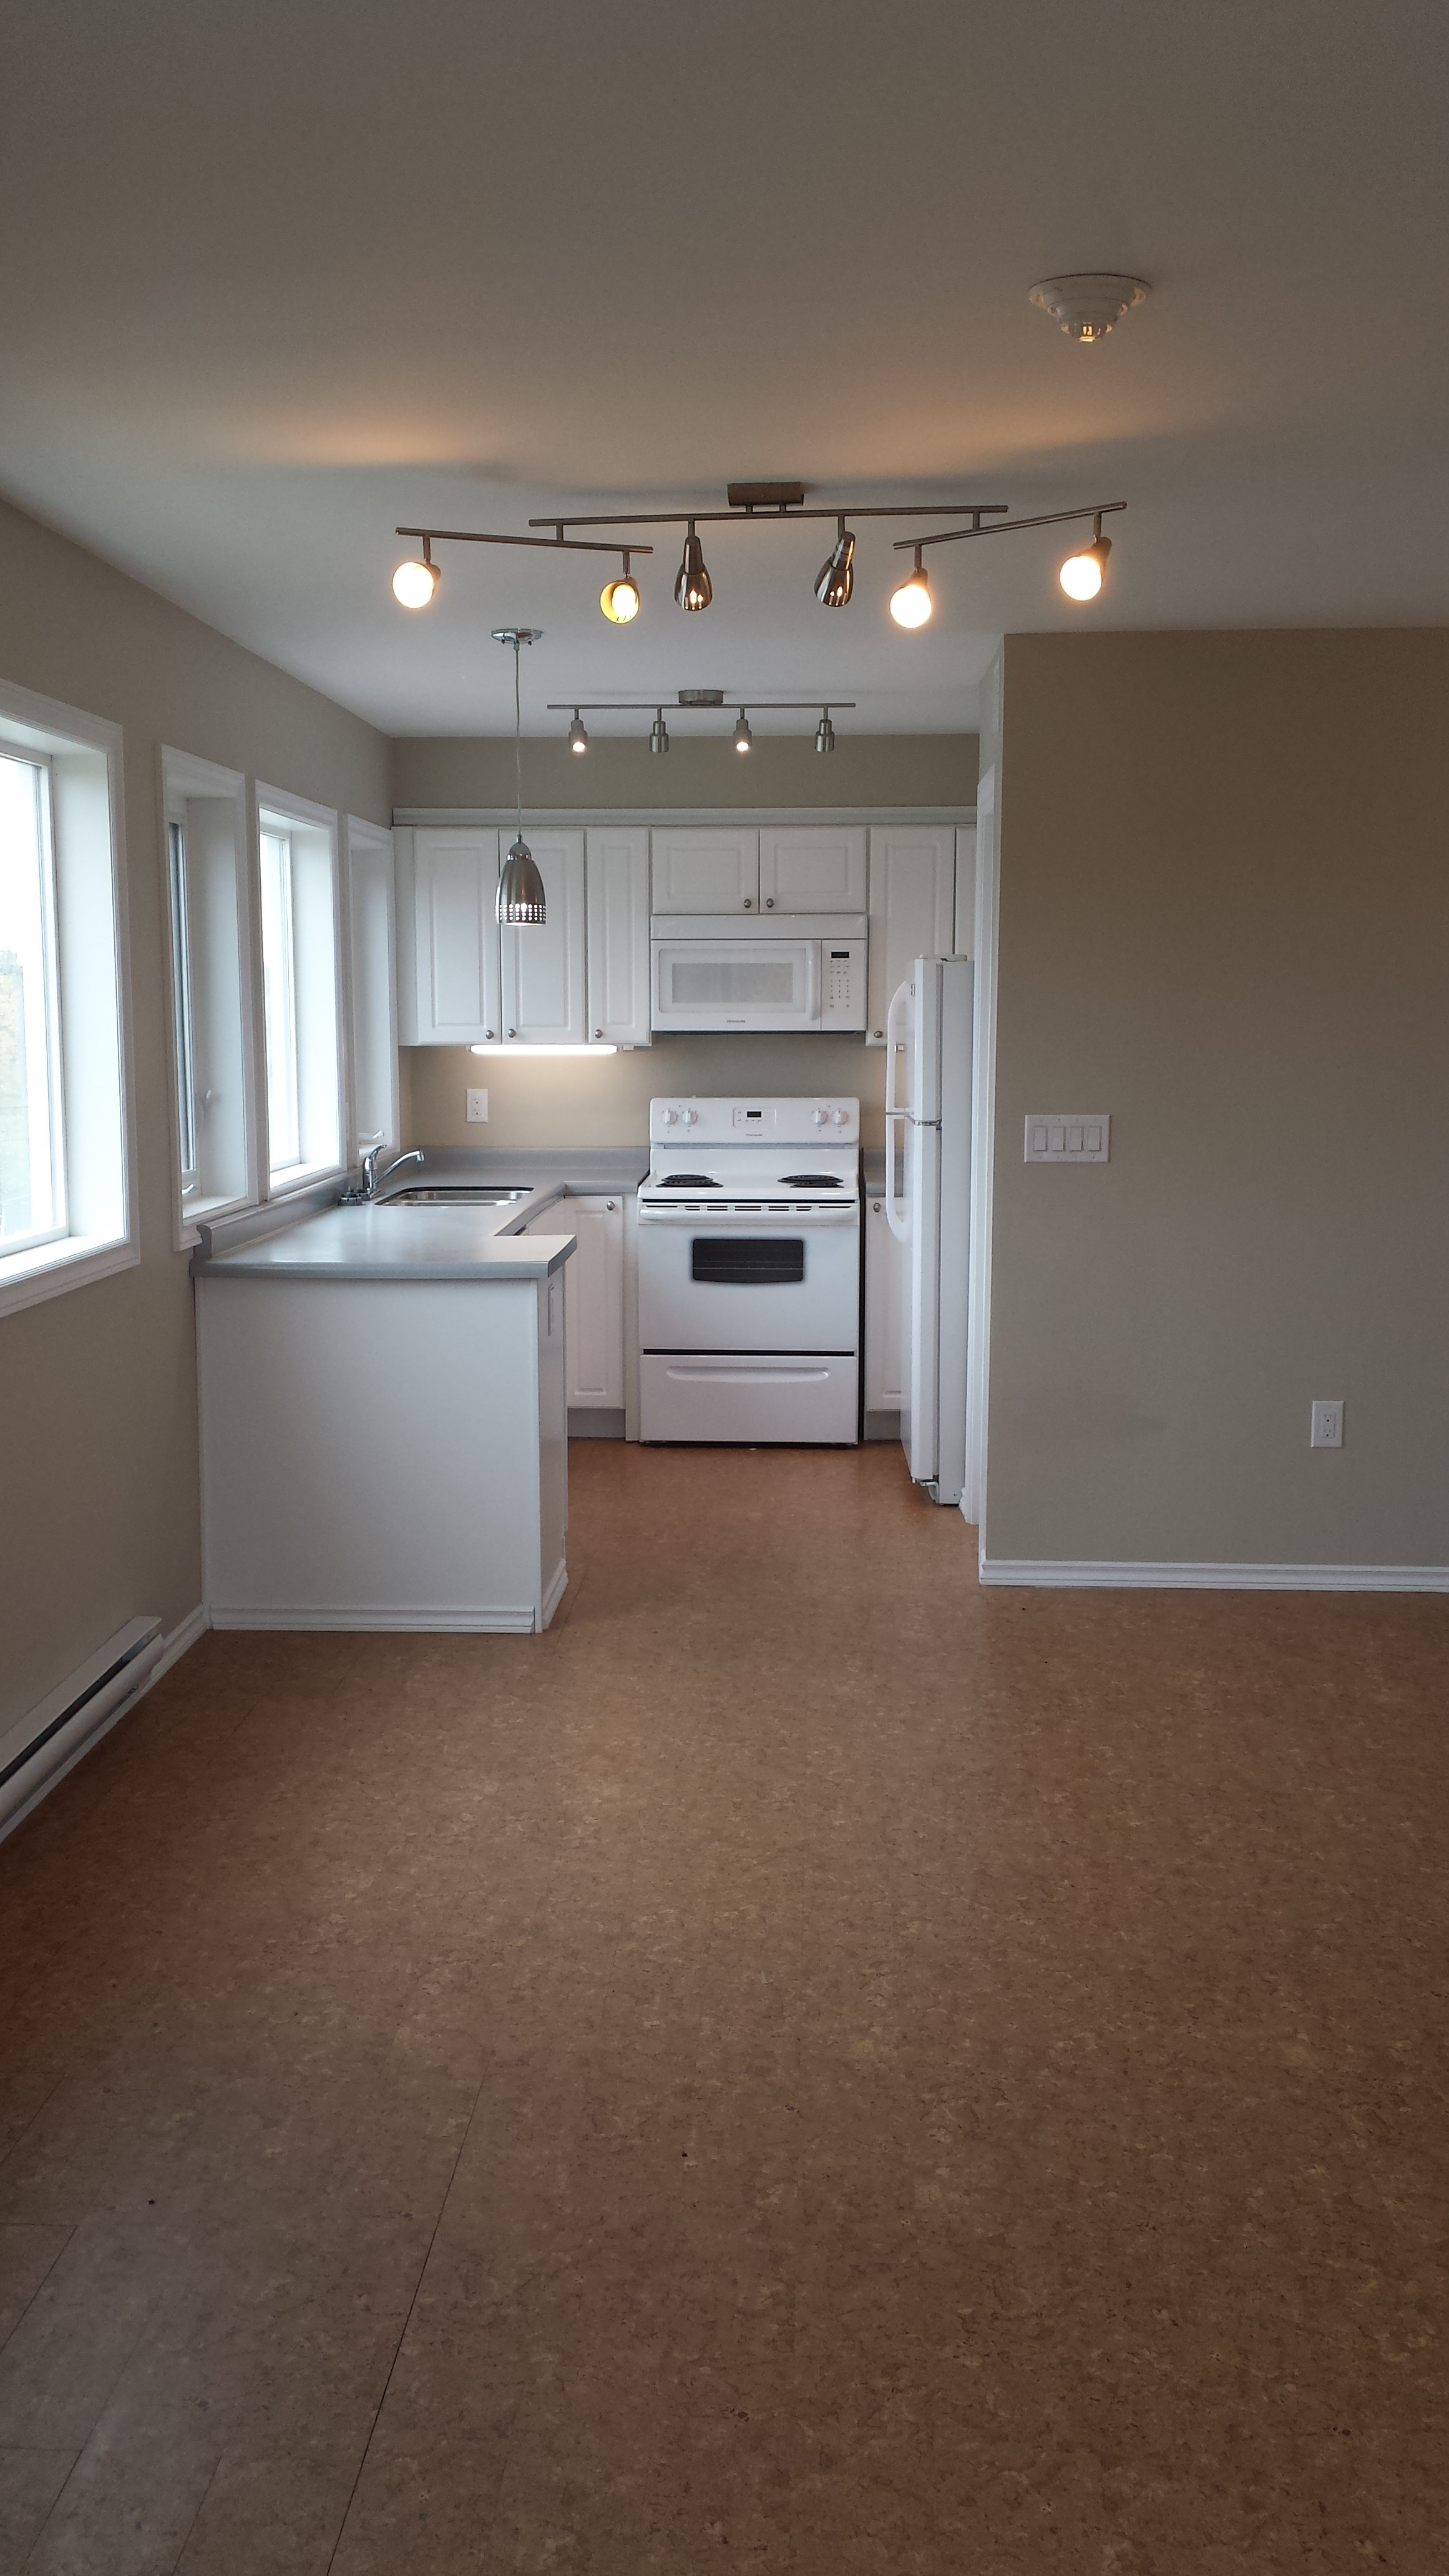 Apartments For Rent Winnipeg - 255 Sophia Apartment Kitchen - Towers Realty